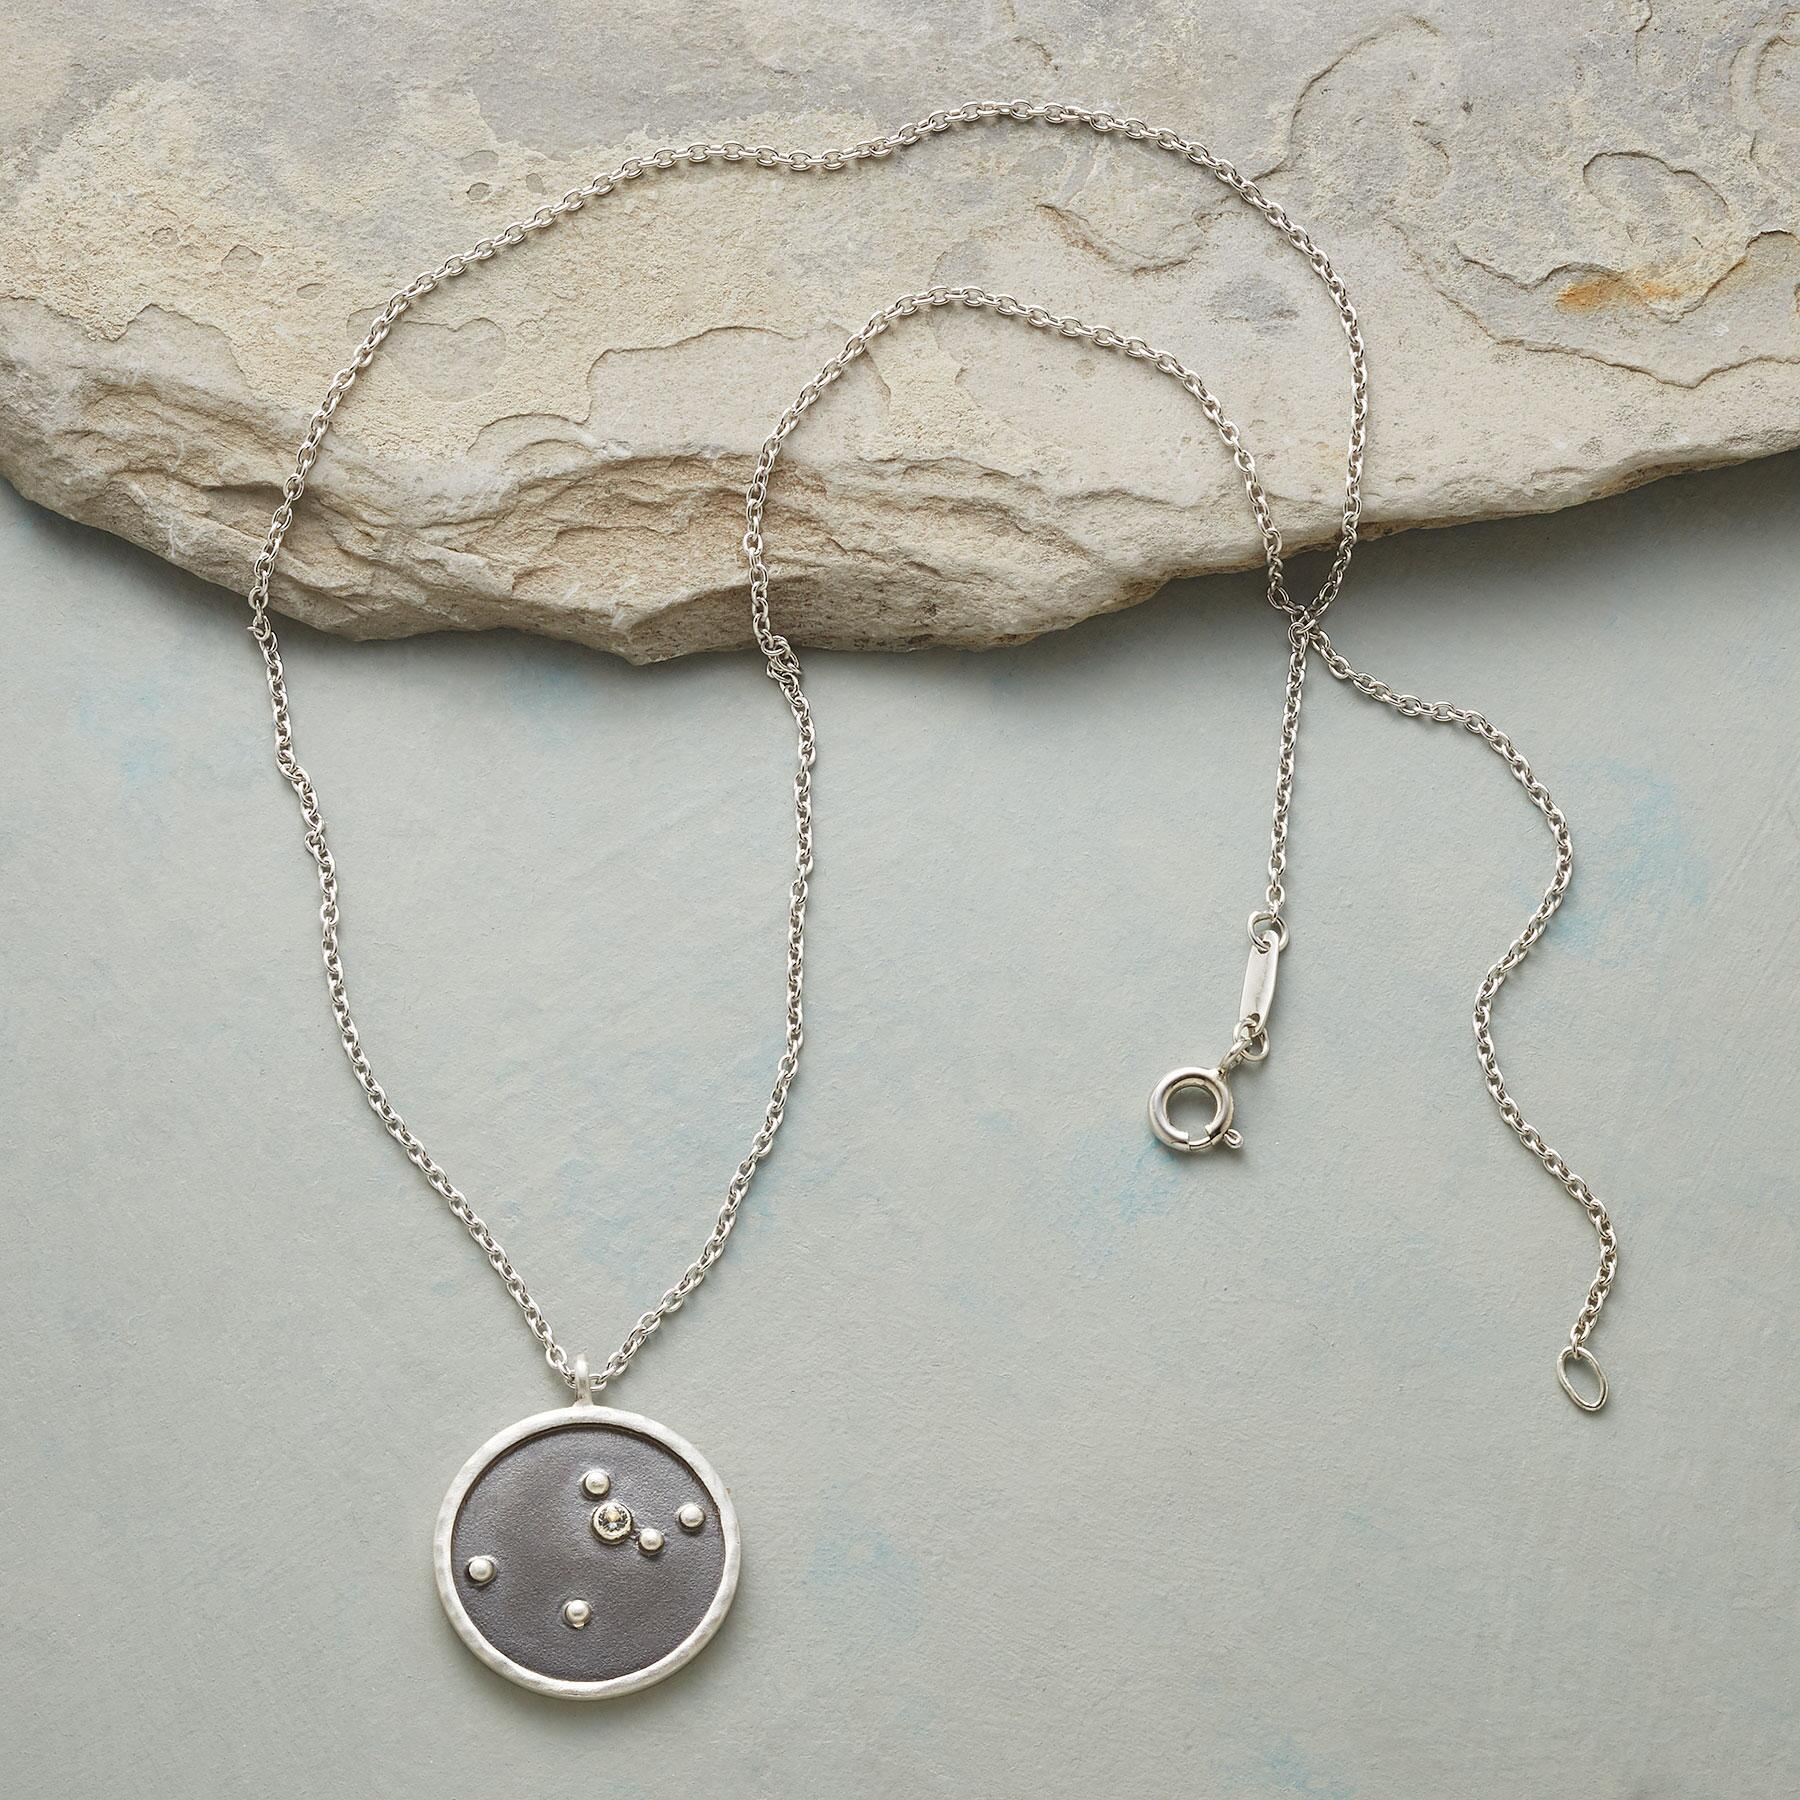 STERLING SILVER ZODIAC CONSTELLATION NECKLACE: View 2